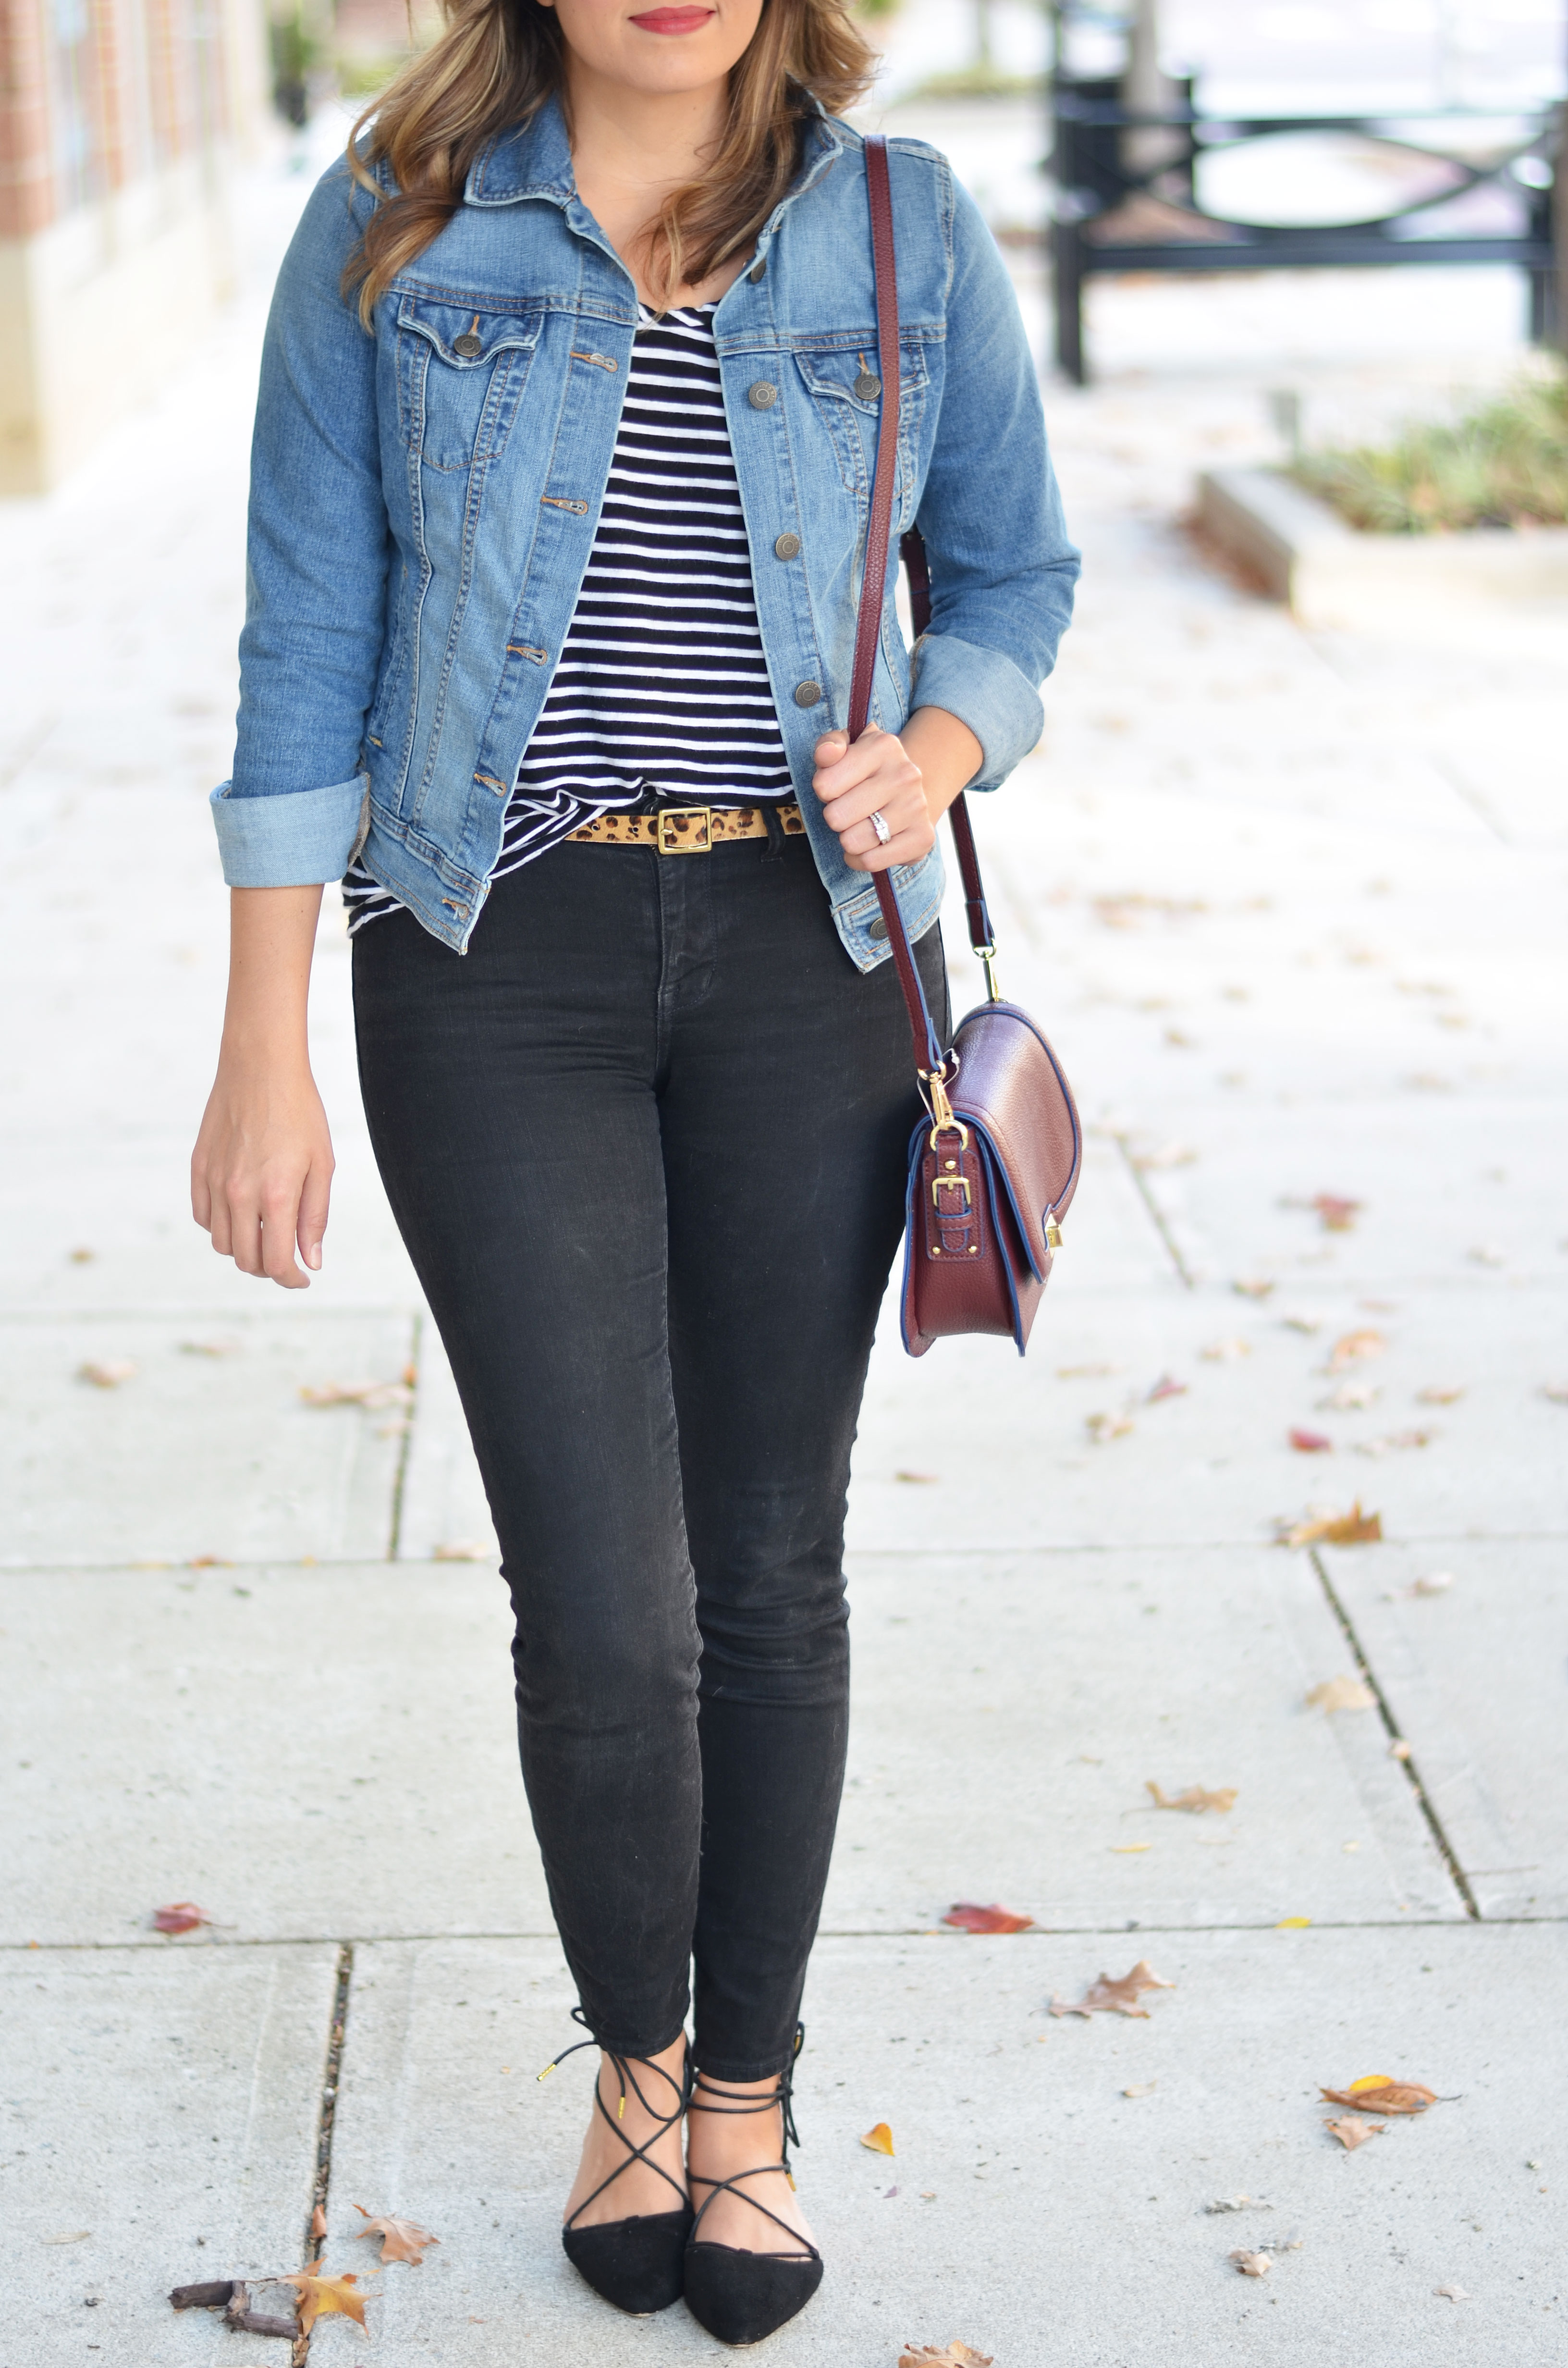 how wear a denim jacket - perfect denim jacket with striped tee, leopard print belt, black jeans, and black lace-up flats | www.bylaurenm.com